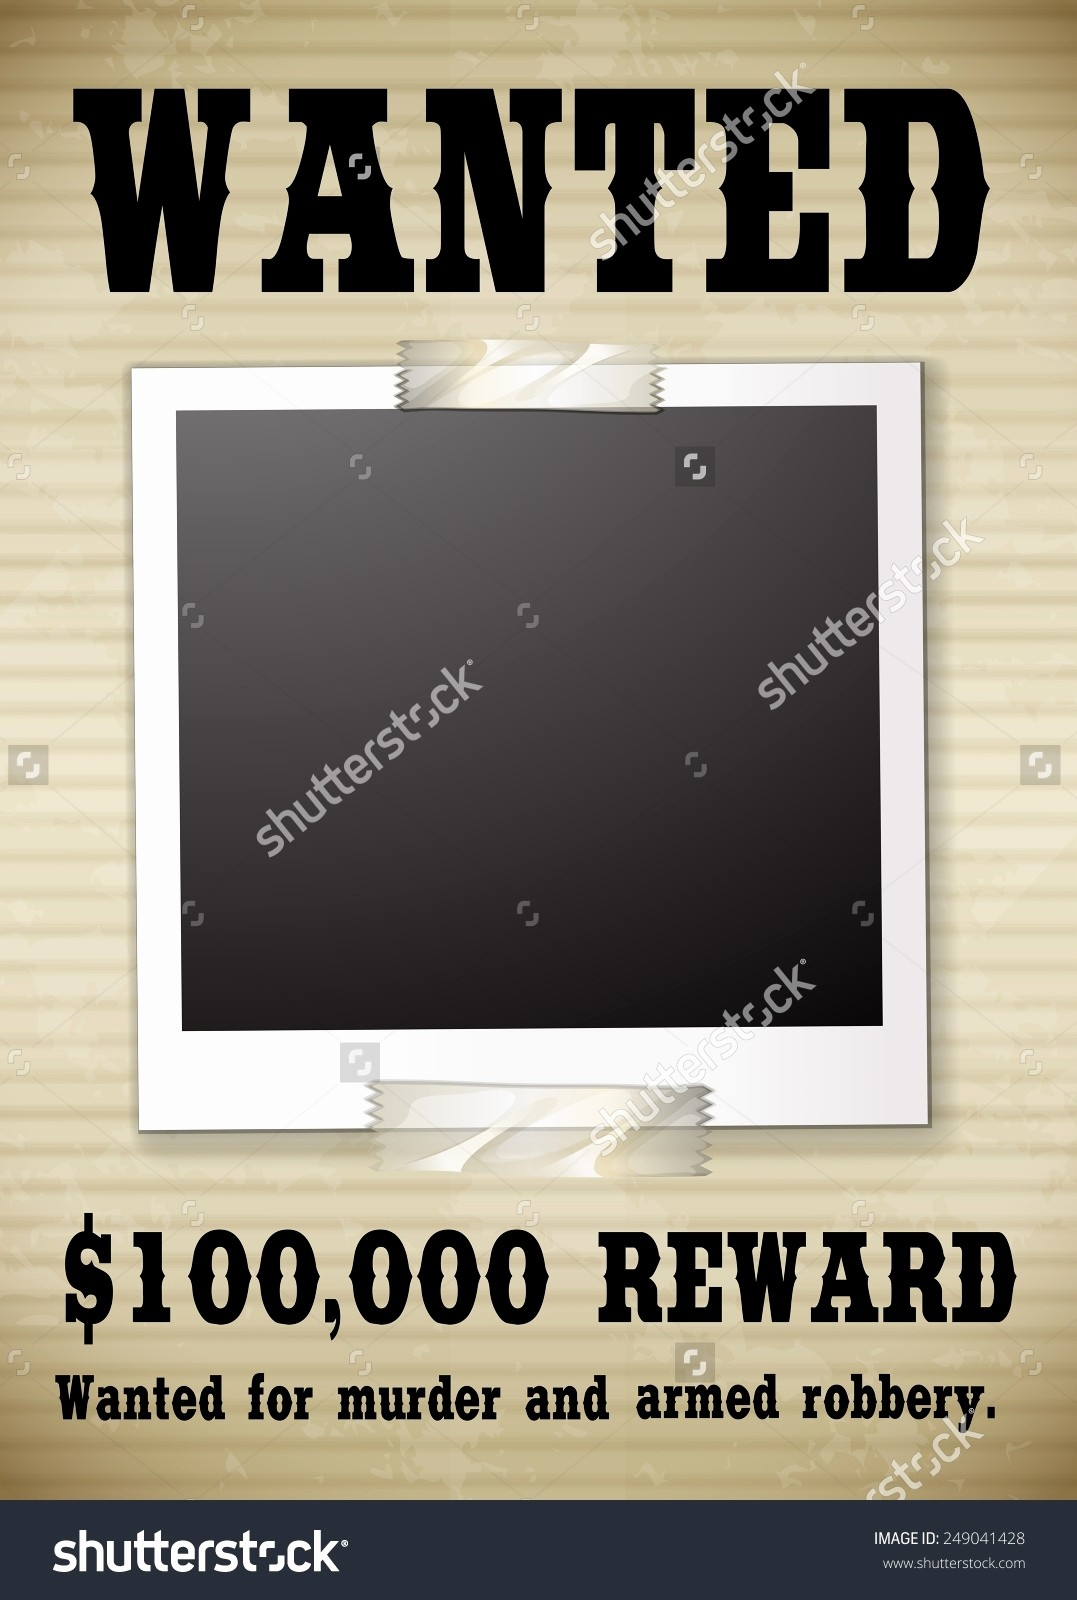 Lost and Found Sign Template Inspirational Lost Dog Template Beepmunk